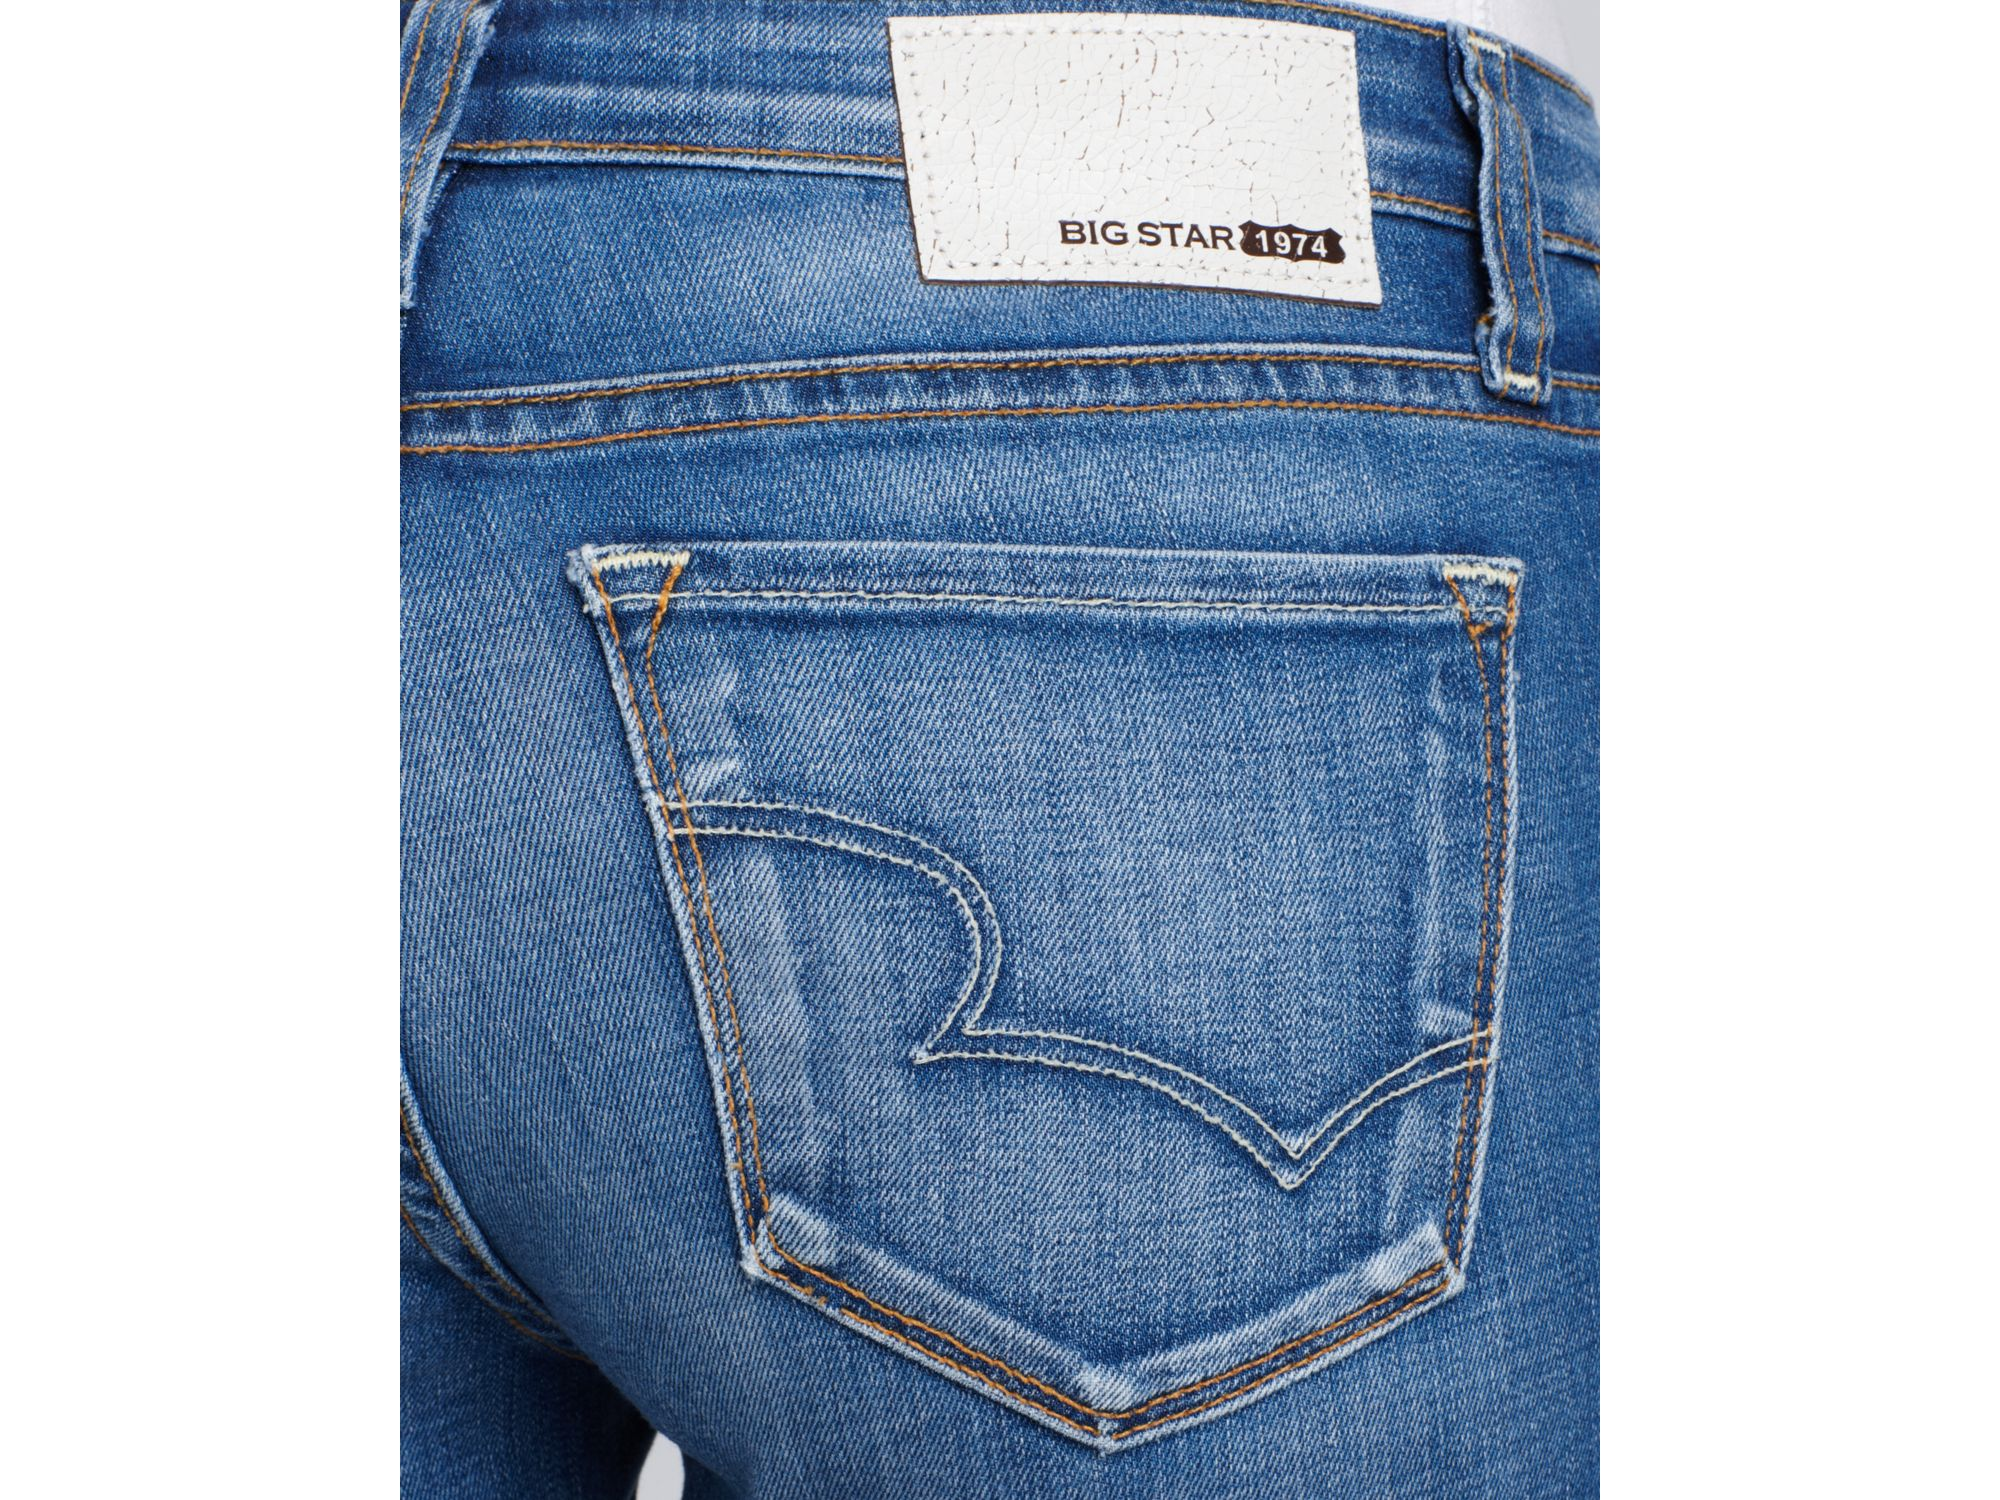 Big star Jeans Alex Skinny Ankle in Olympia Pale in Blue   Lyst